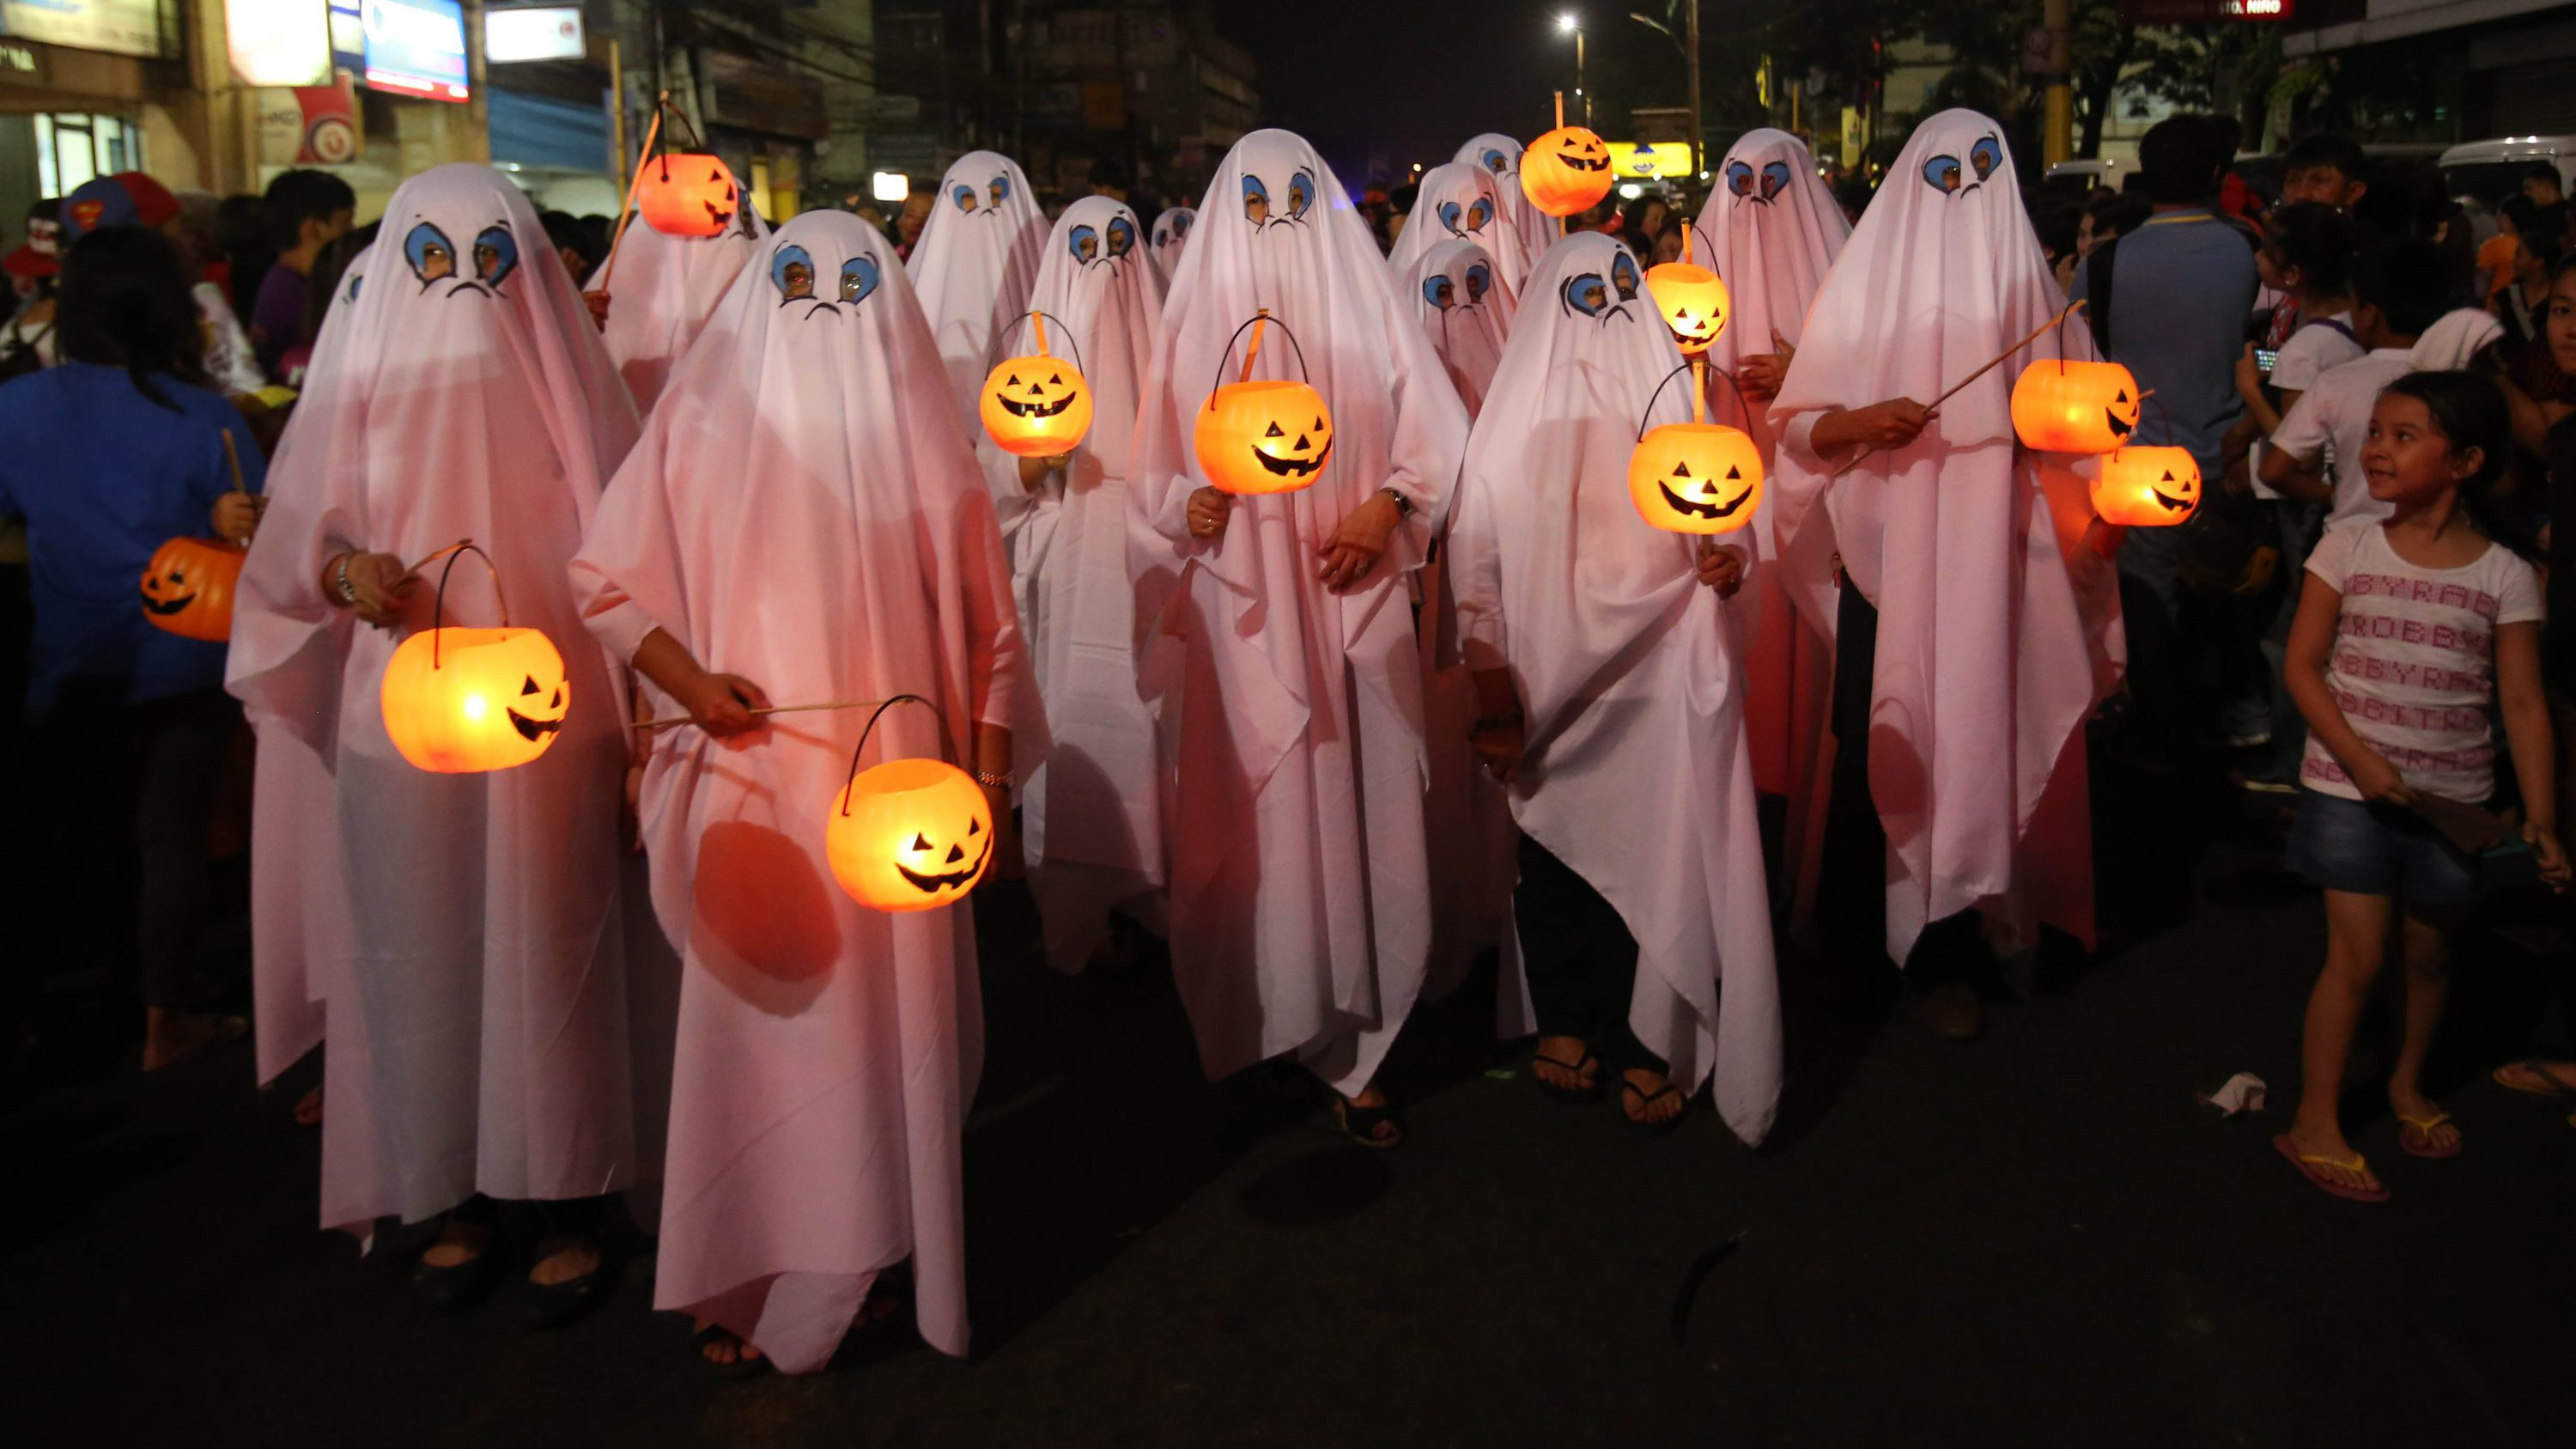 Filipinos wear ghost costumes as they join a Halloween Parade in Marikina city, east of Manila, Philippines on Wednesday, Oct. 30, 2013. Hundreds of residents and government employees joined the parade as the country prepares to observe All Saints Day on Nov. 1.